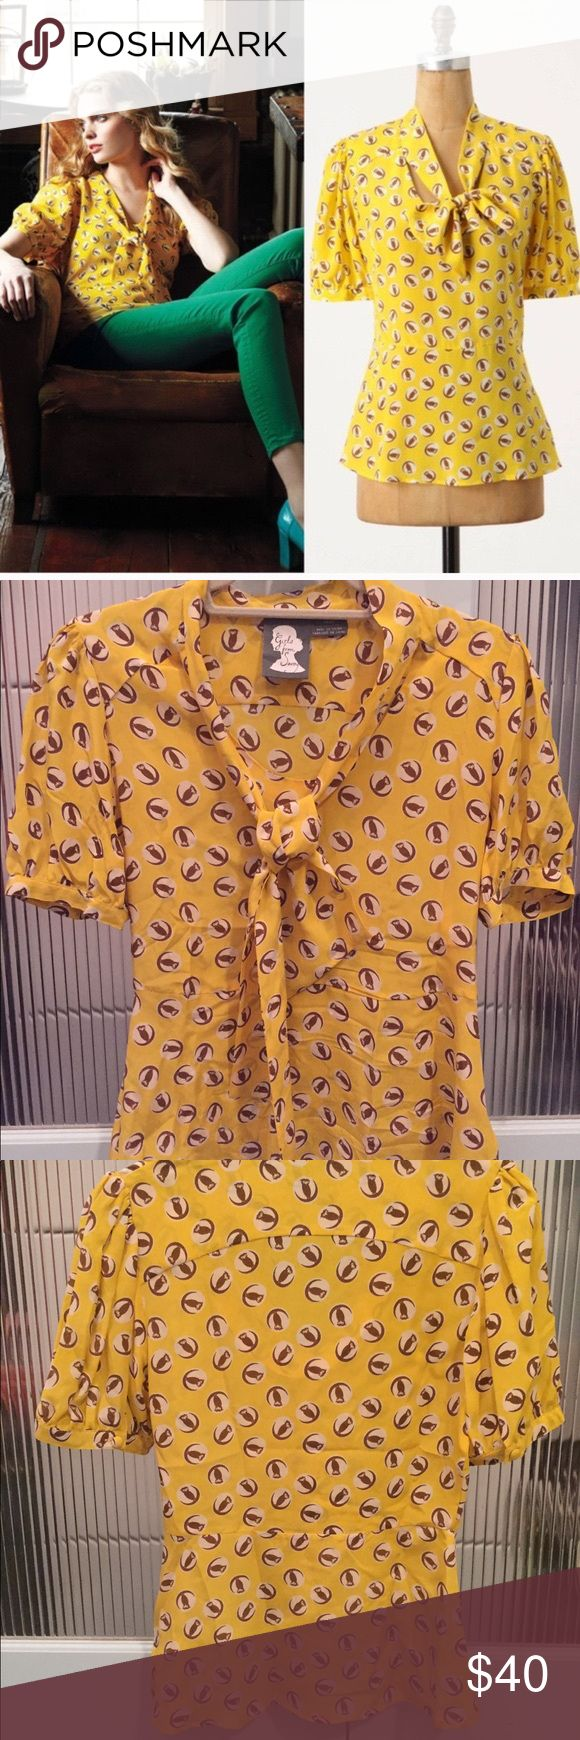 Girls from Savoy blouse Girls from Savoy lemon liftoff blouse. 100% silk, side zipper, tie in front. Adorable owl print. Anthropologie Tops Blouses